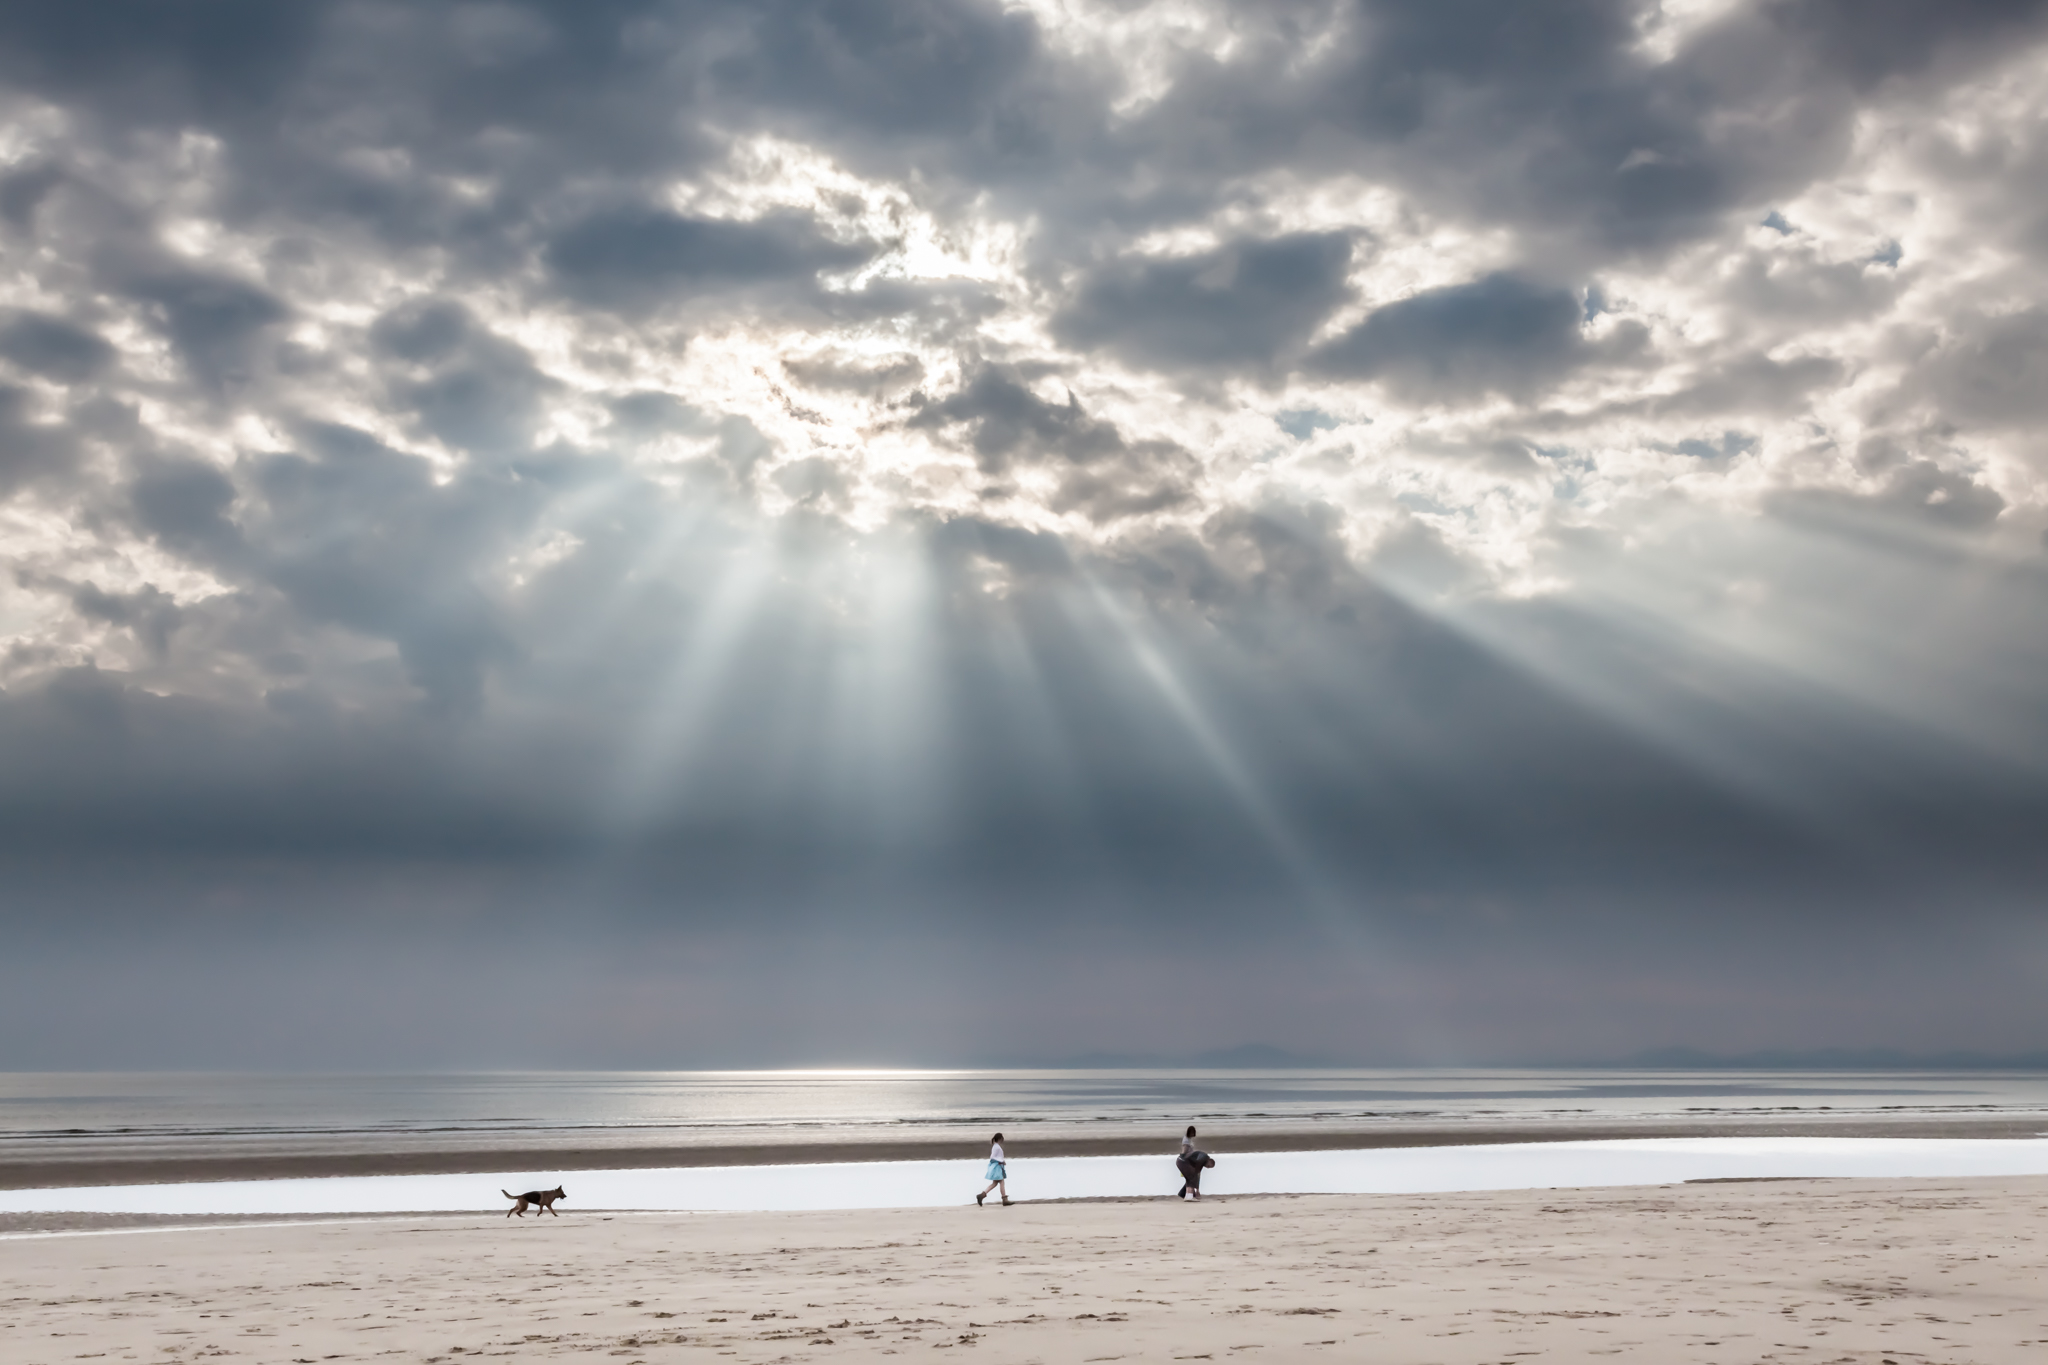 A couple out walking on Harlech beach, with their daughter and dog, seem oblivious to the amazing sunbeams coming through the clouds to illuminate the beach and the sea.